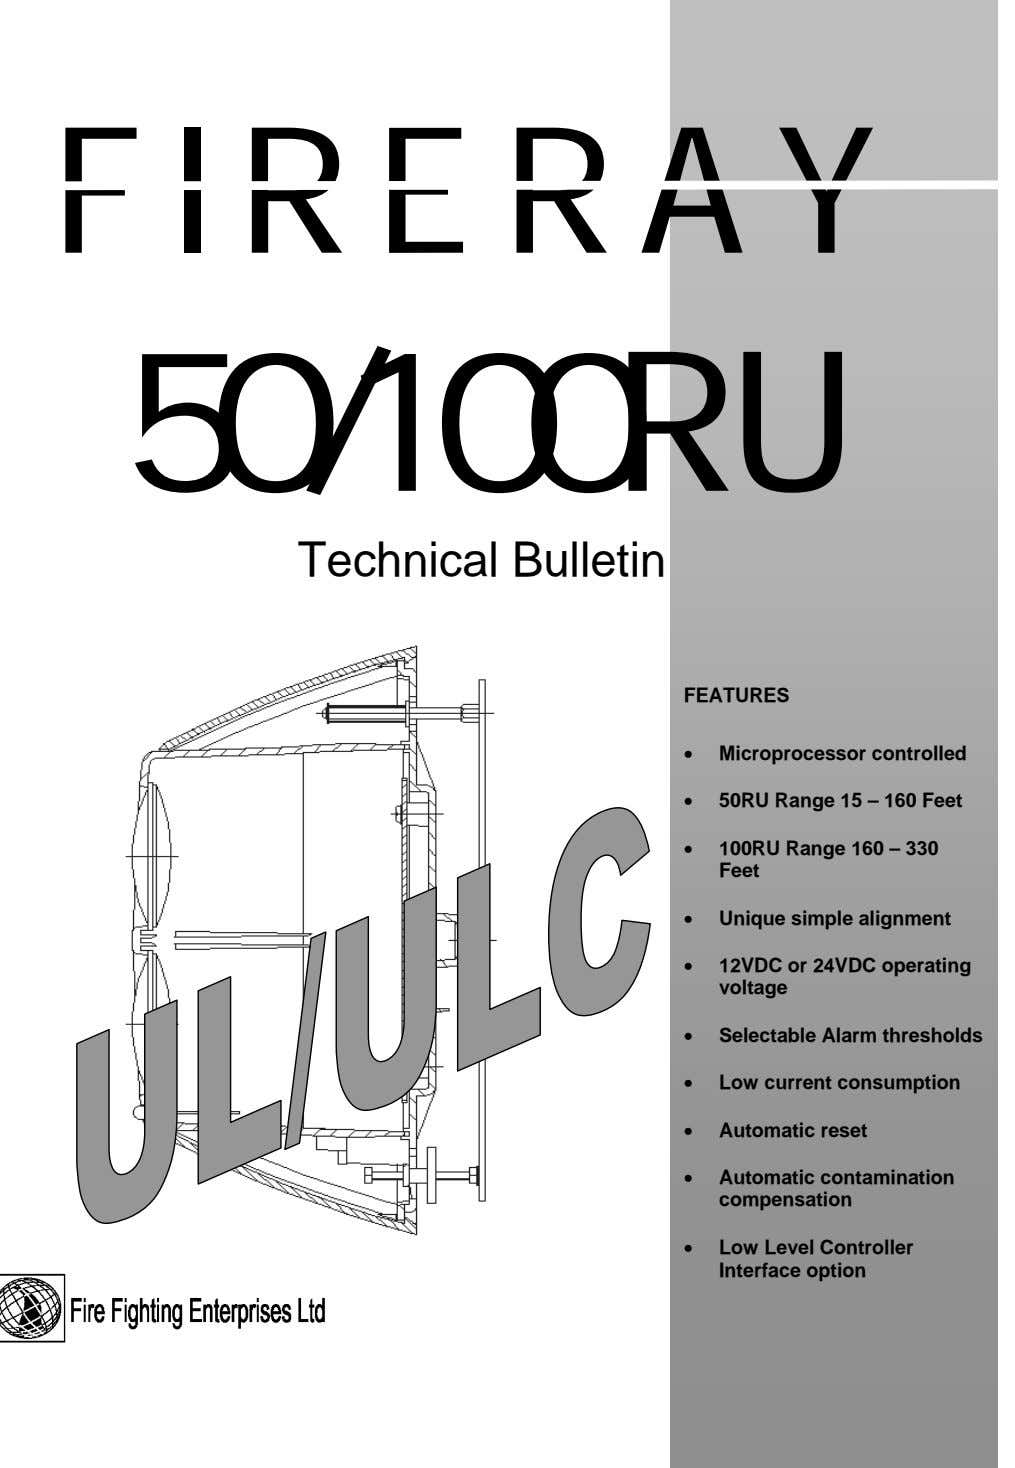 FIRERAY 50/100RU Technical Bulletin FEATURES • Microprocessor controlled • 50RU Range 15 – 160 Feet